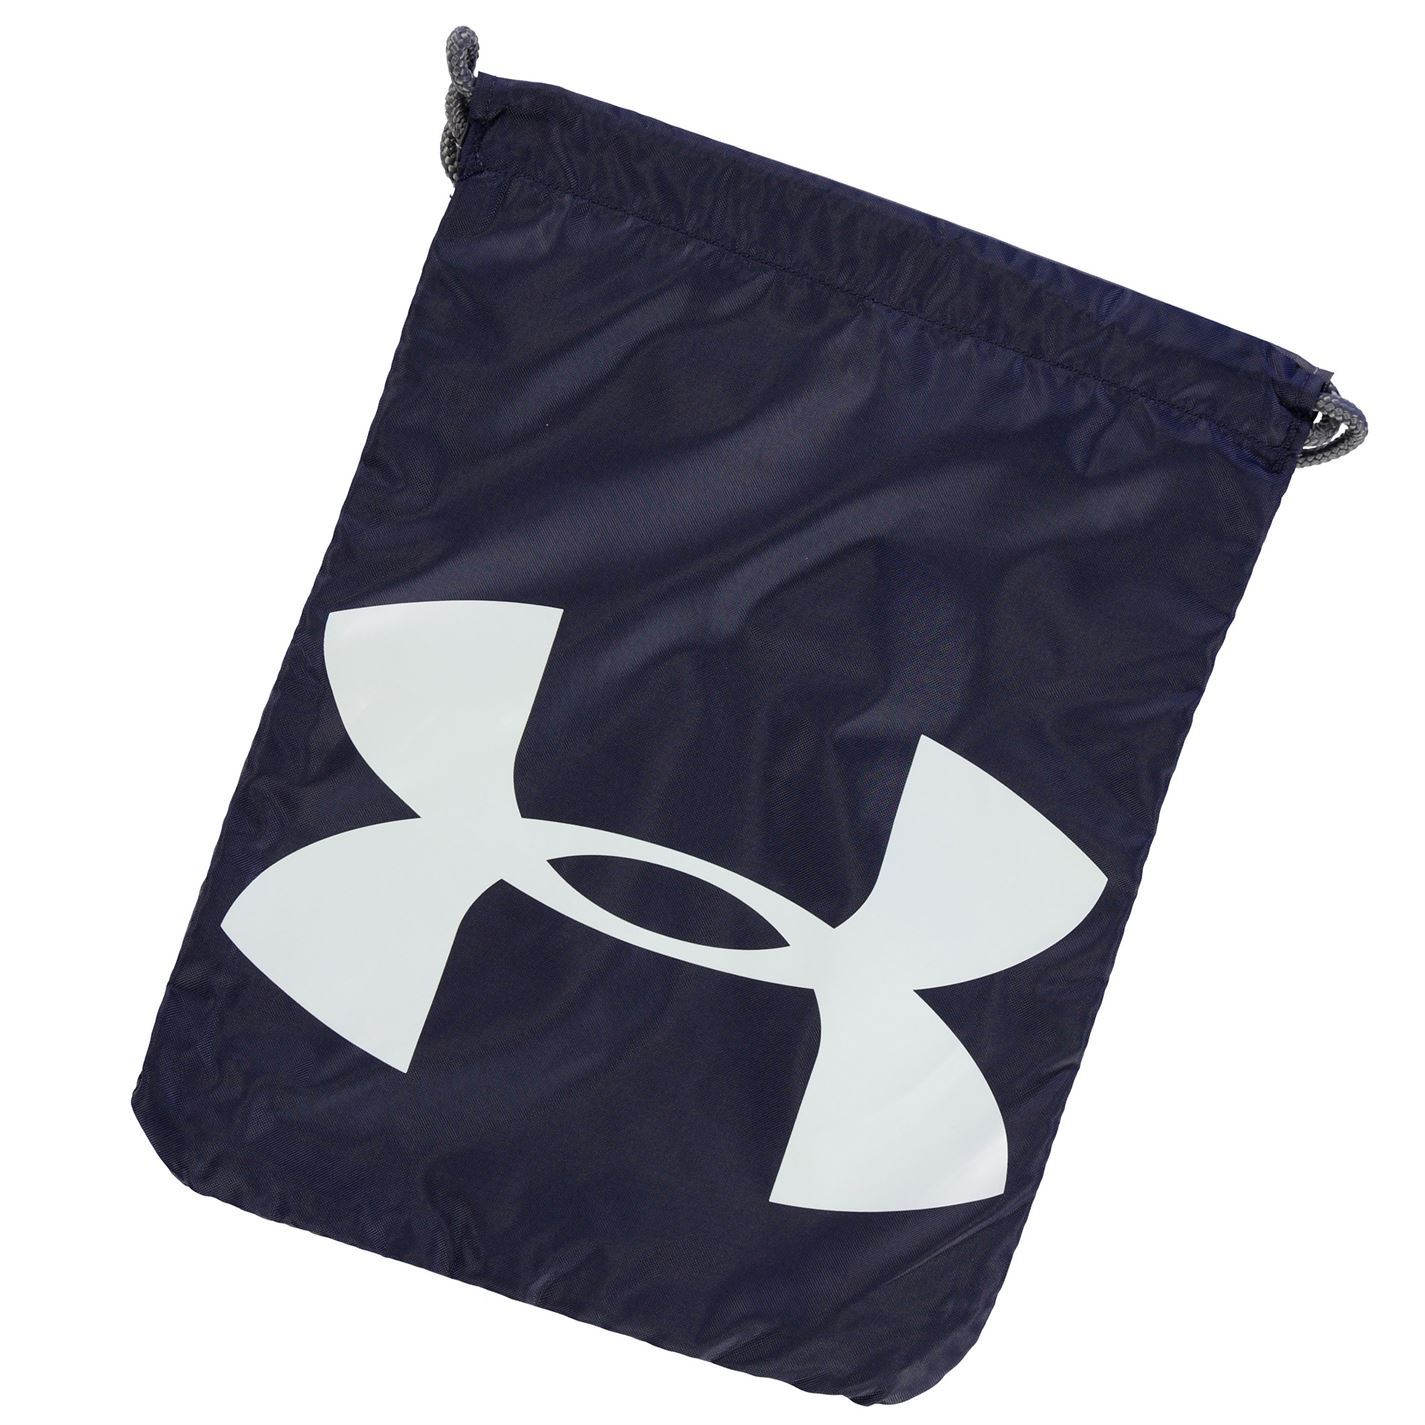 ddacff4bb9a Under Armour Ozsee Gym Sack Drawstring Storing Carrier Training ...